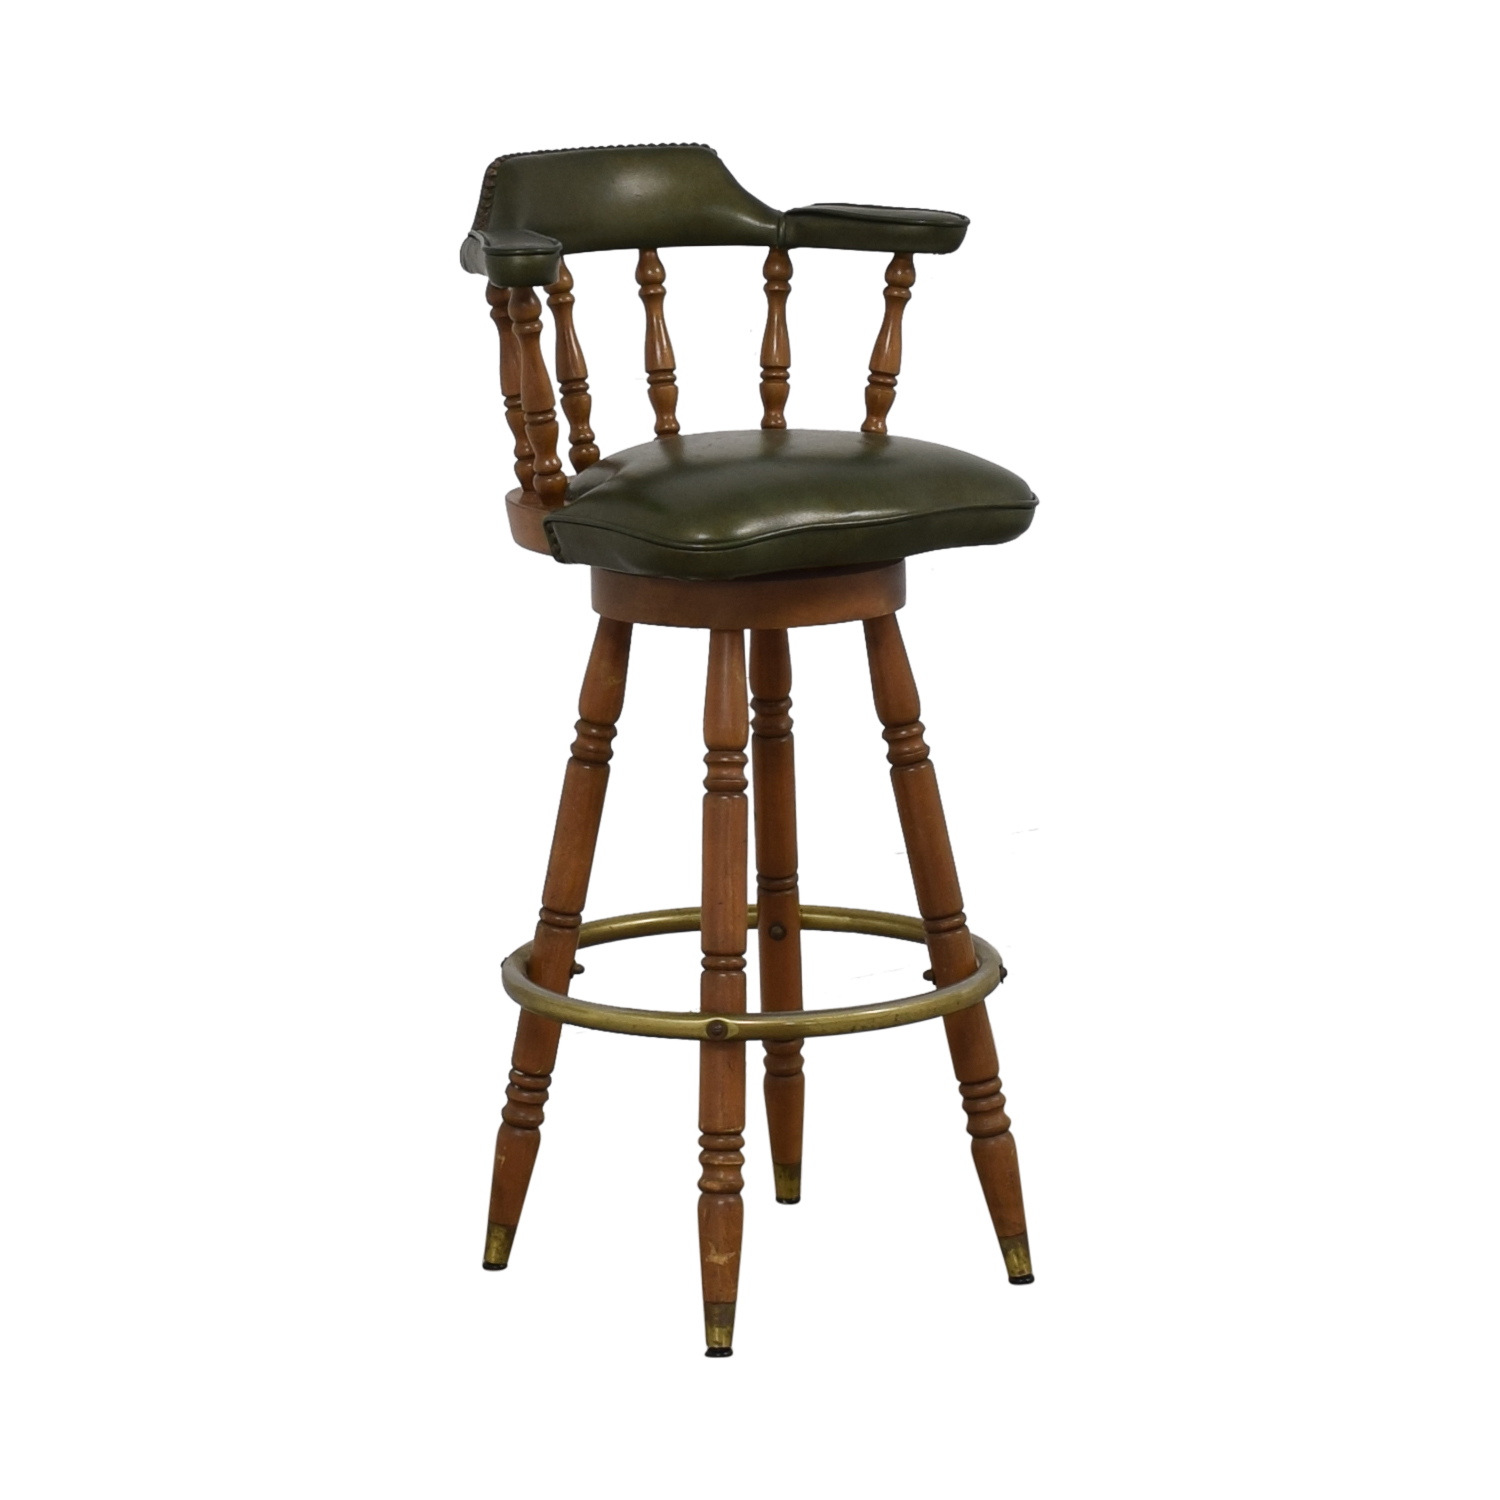 Vintage Green Leather Swivel Bar Stool used